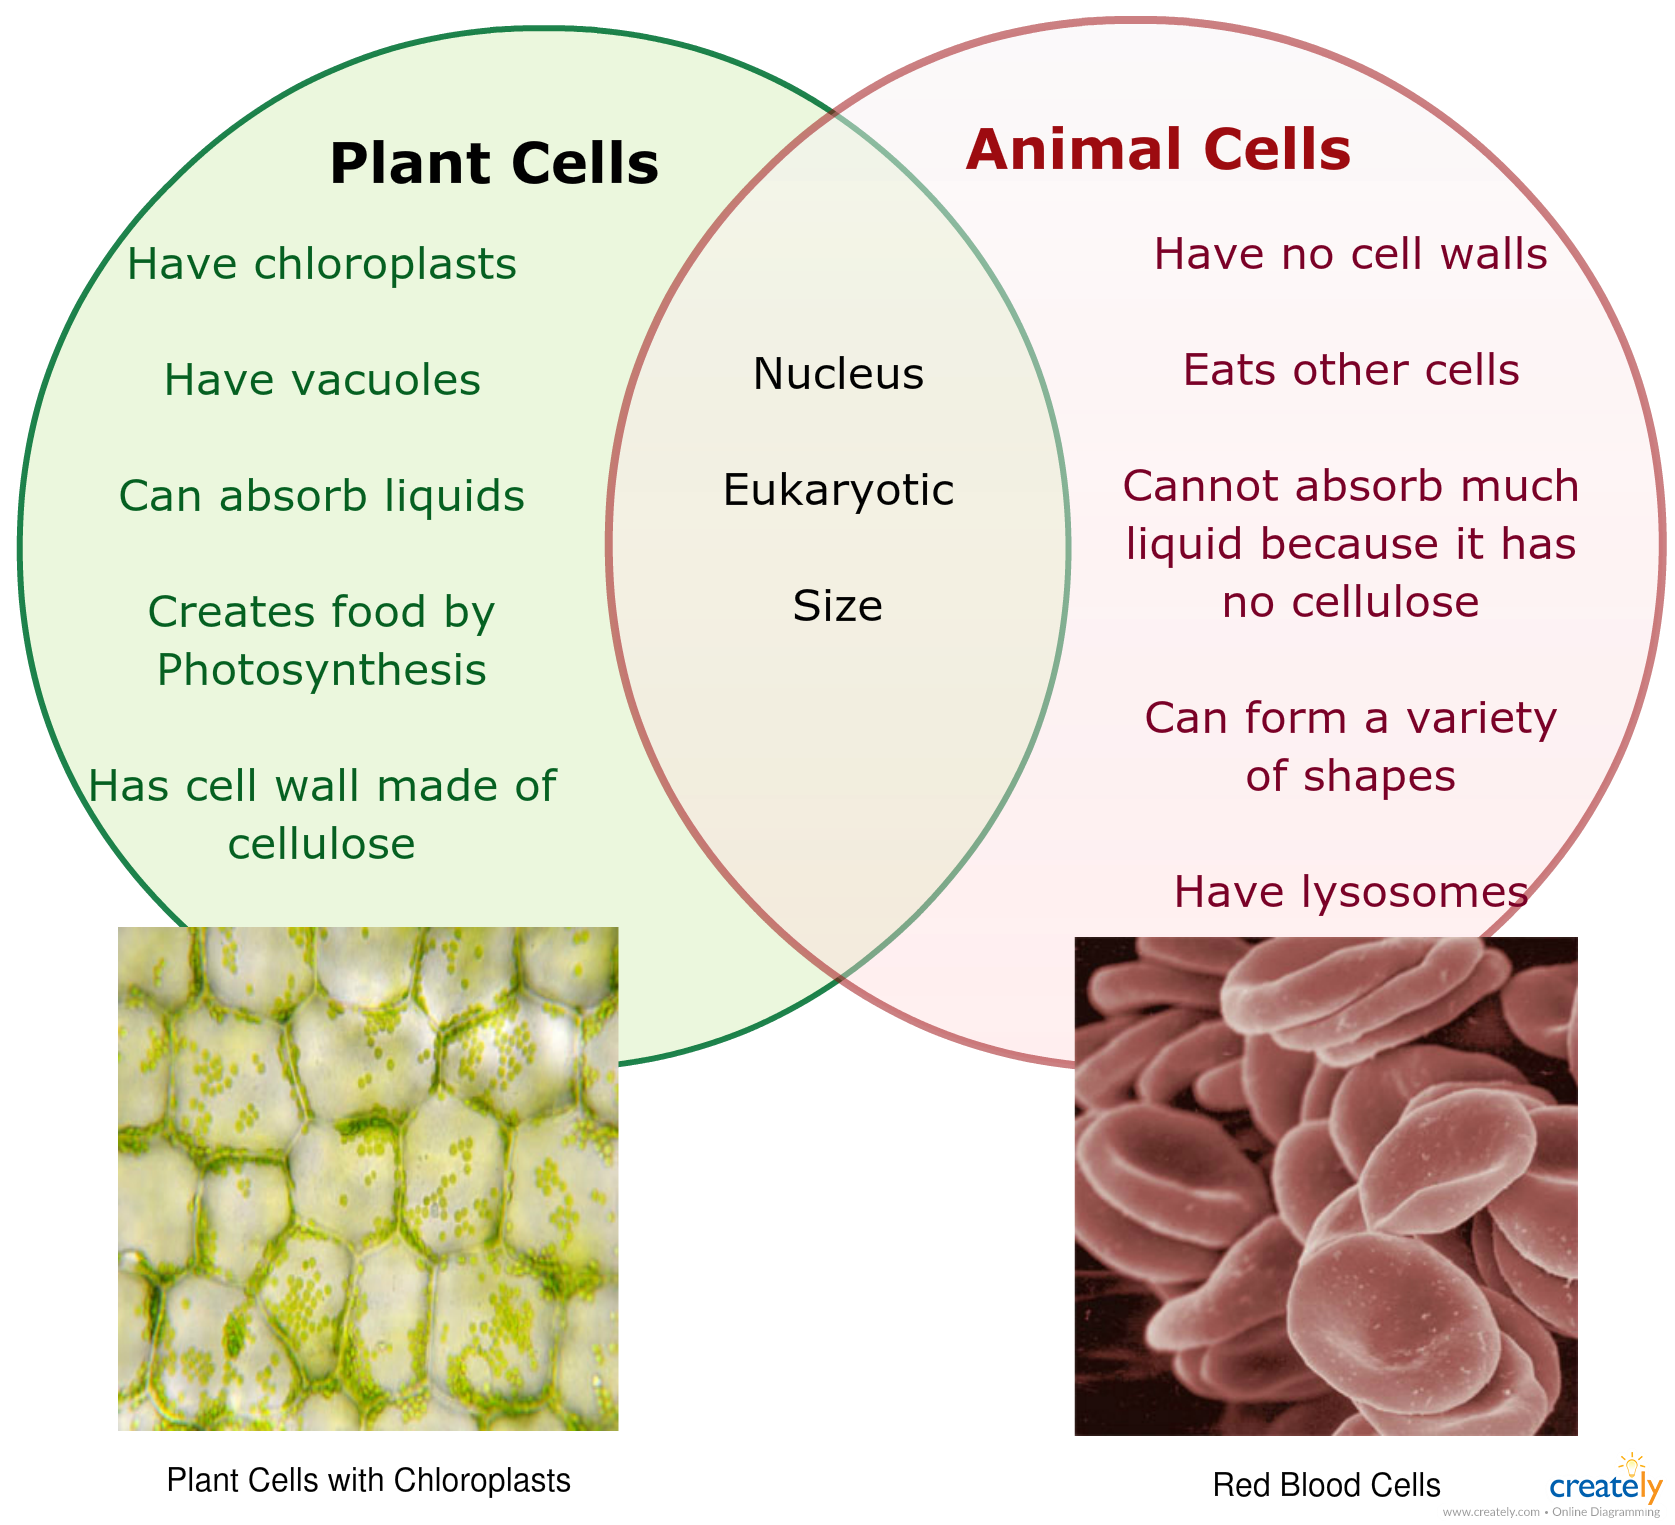 Plant vs animal cells venn diagram for educational purposes venn plant vs animal cells venn diagram for educational purposes venn diagram pooptronica Gallery